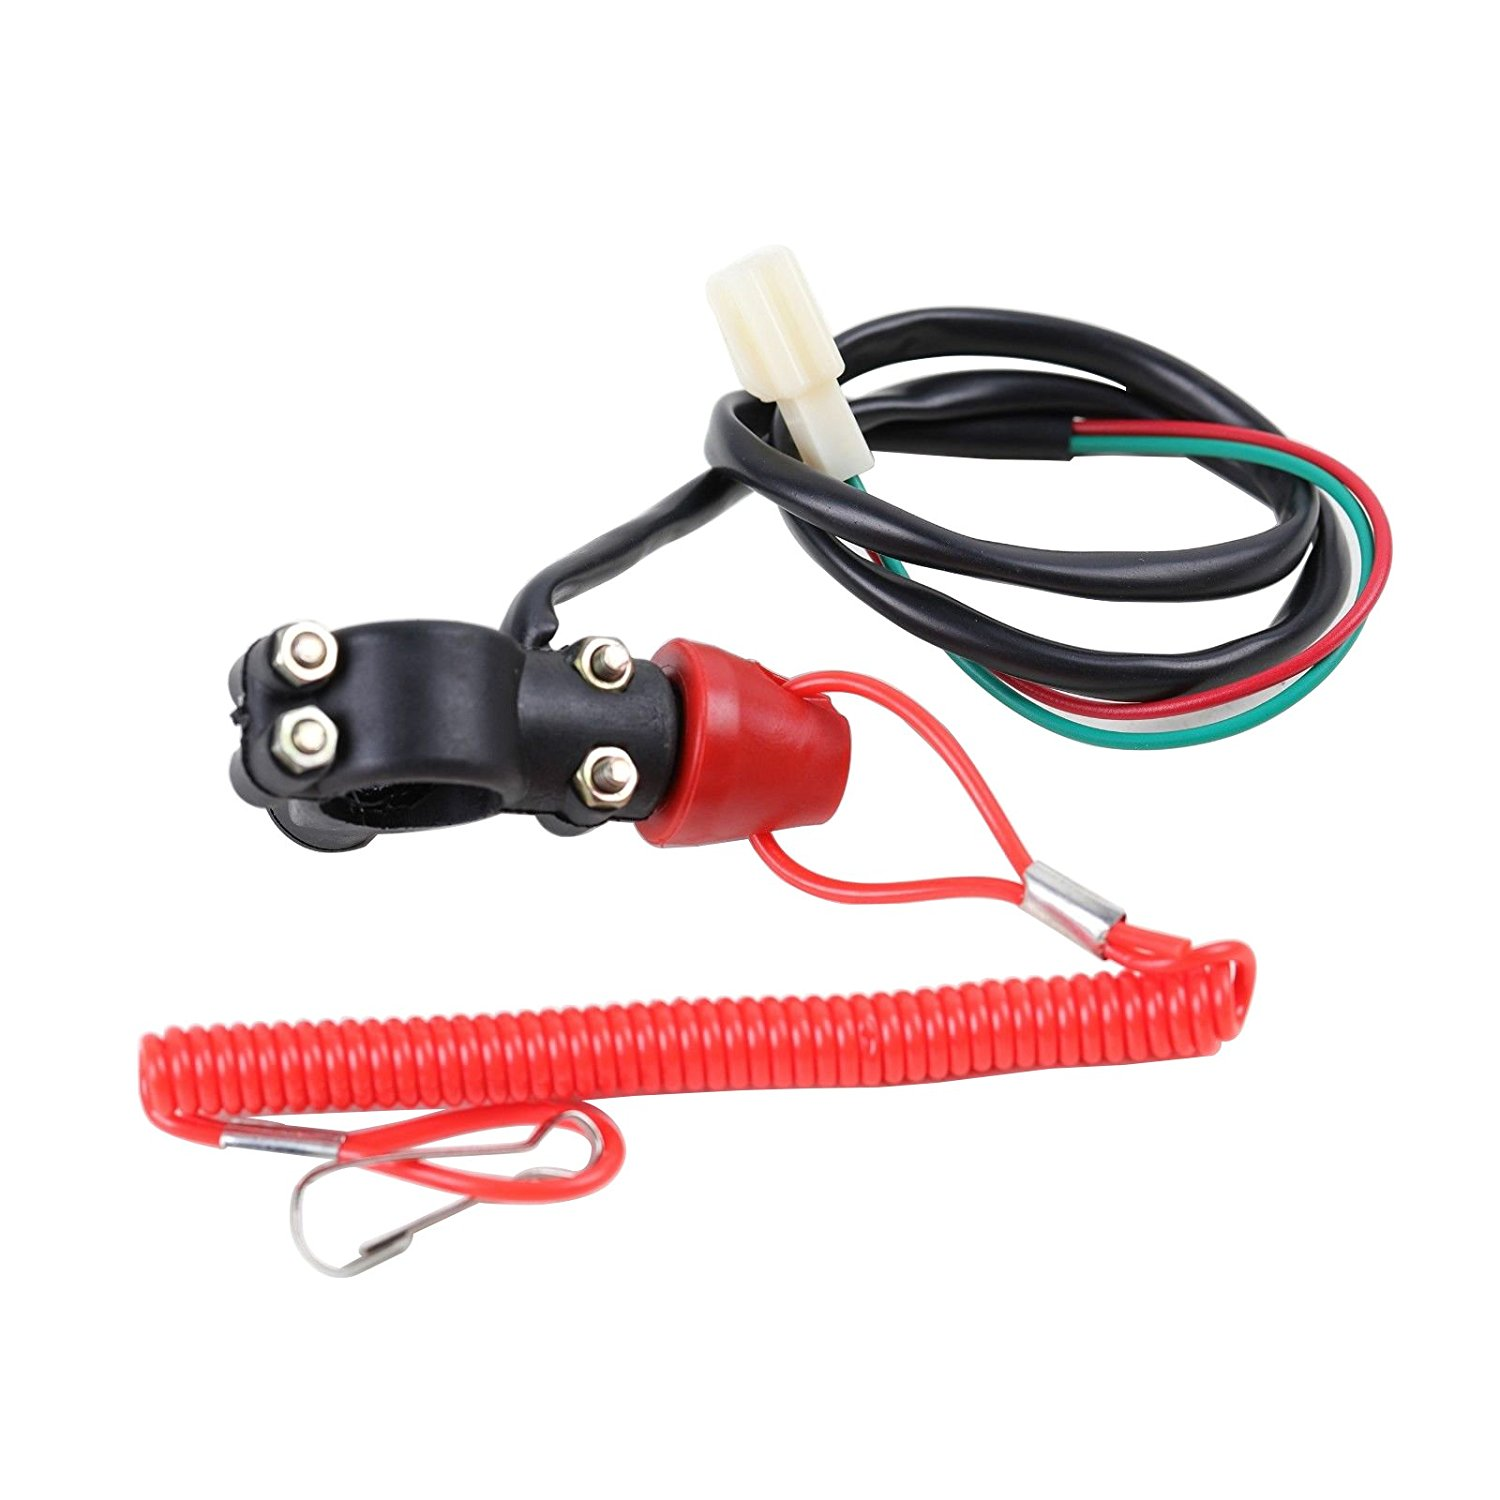 Cheap Tether Kill Switch Motorcycle Find How To Wire A On Atv Get Quotations Tdpro 7 8 With Line For Pit Dirt